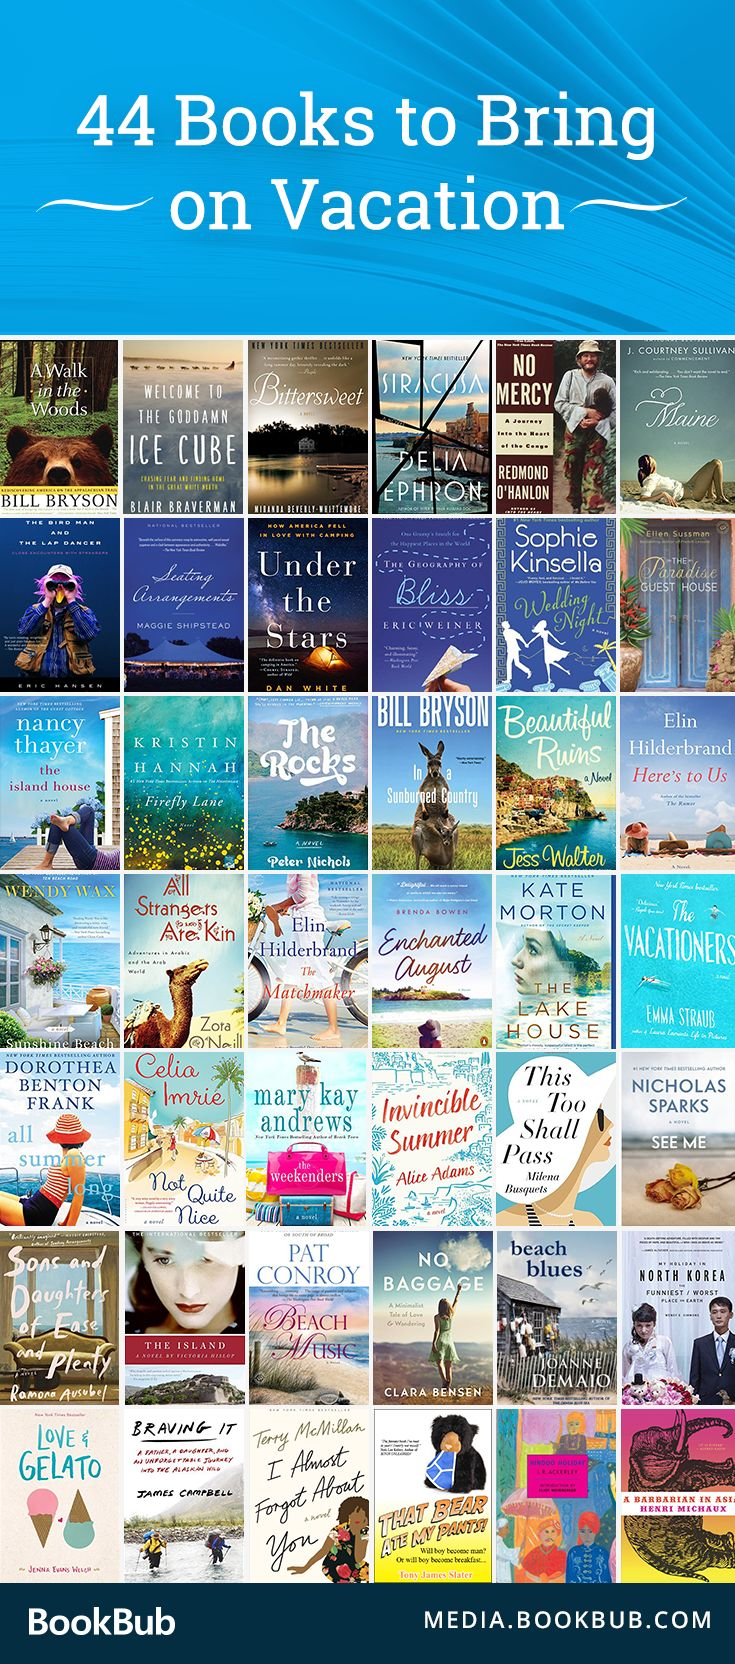 44 Mustread Books To Bring On Vacation From Easy Beach Reads To Funny